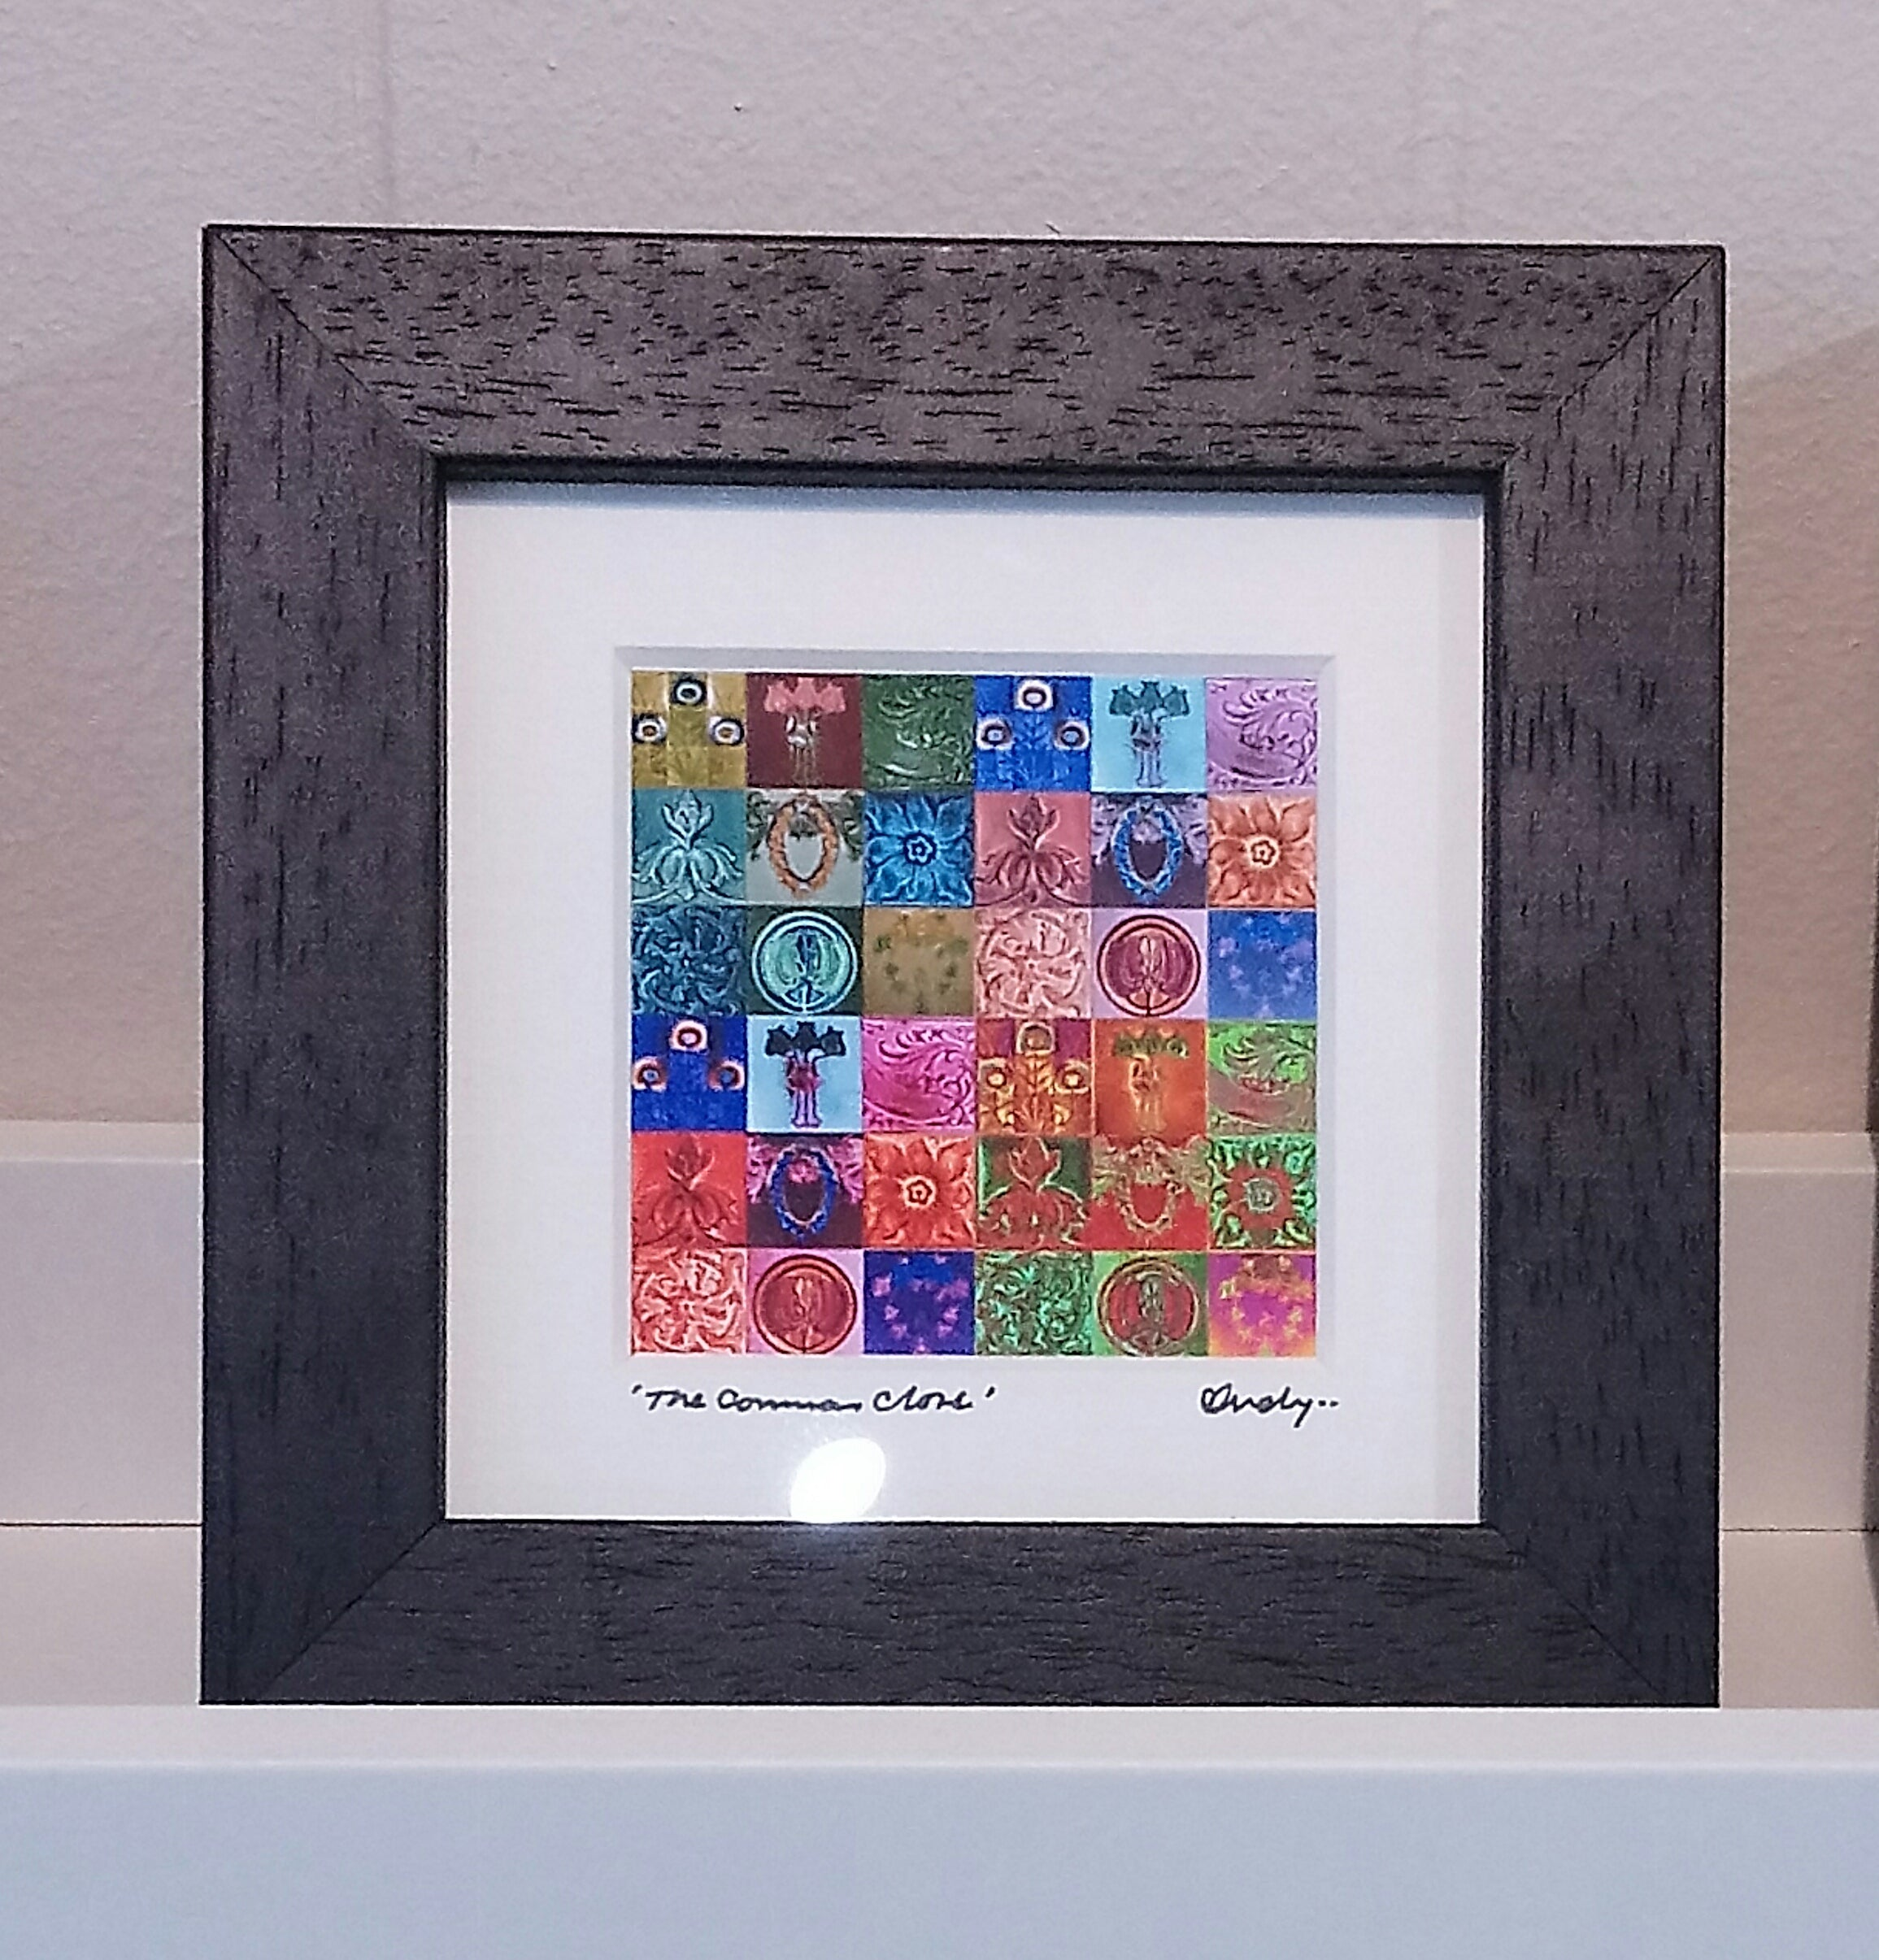 Mini SQ Framed Print By Glasgow Artist Andy Hurst